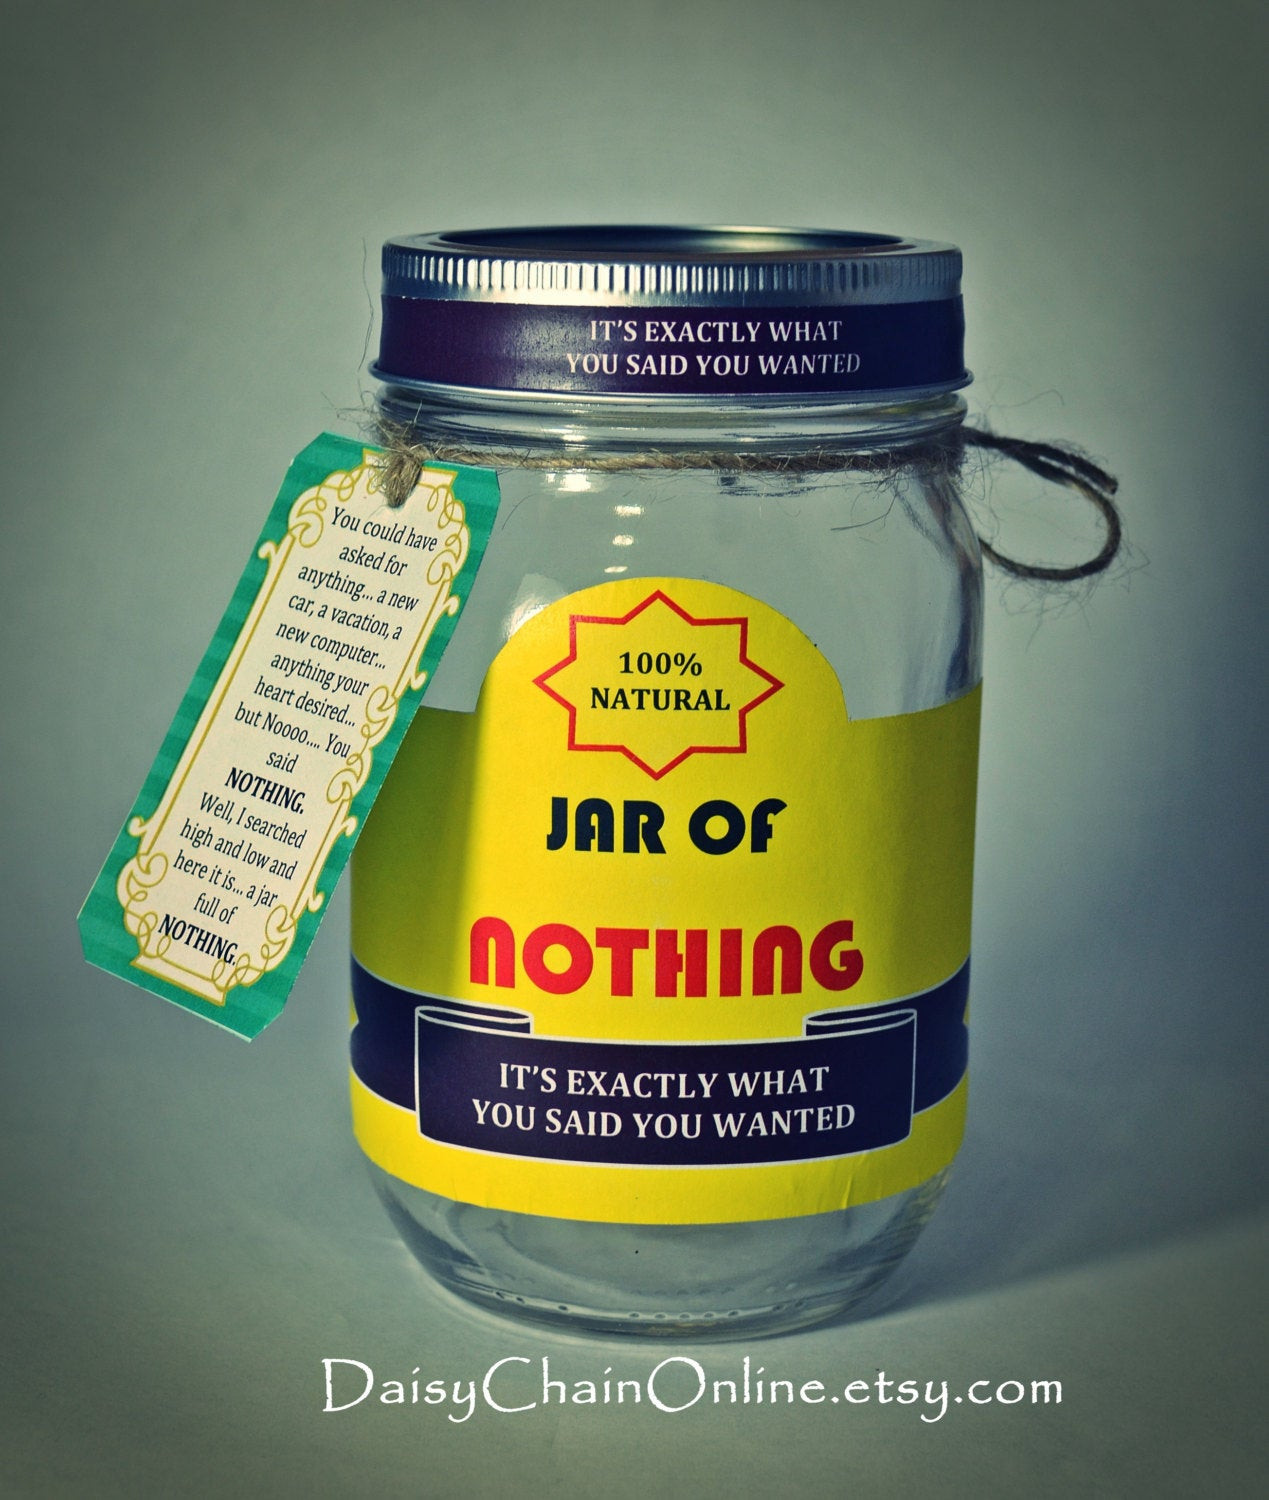 Best Gag Gift Ideas  Best Gag Gift A Jar of Nothing Funny Gift by DaisyChain line